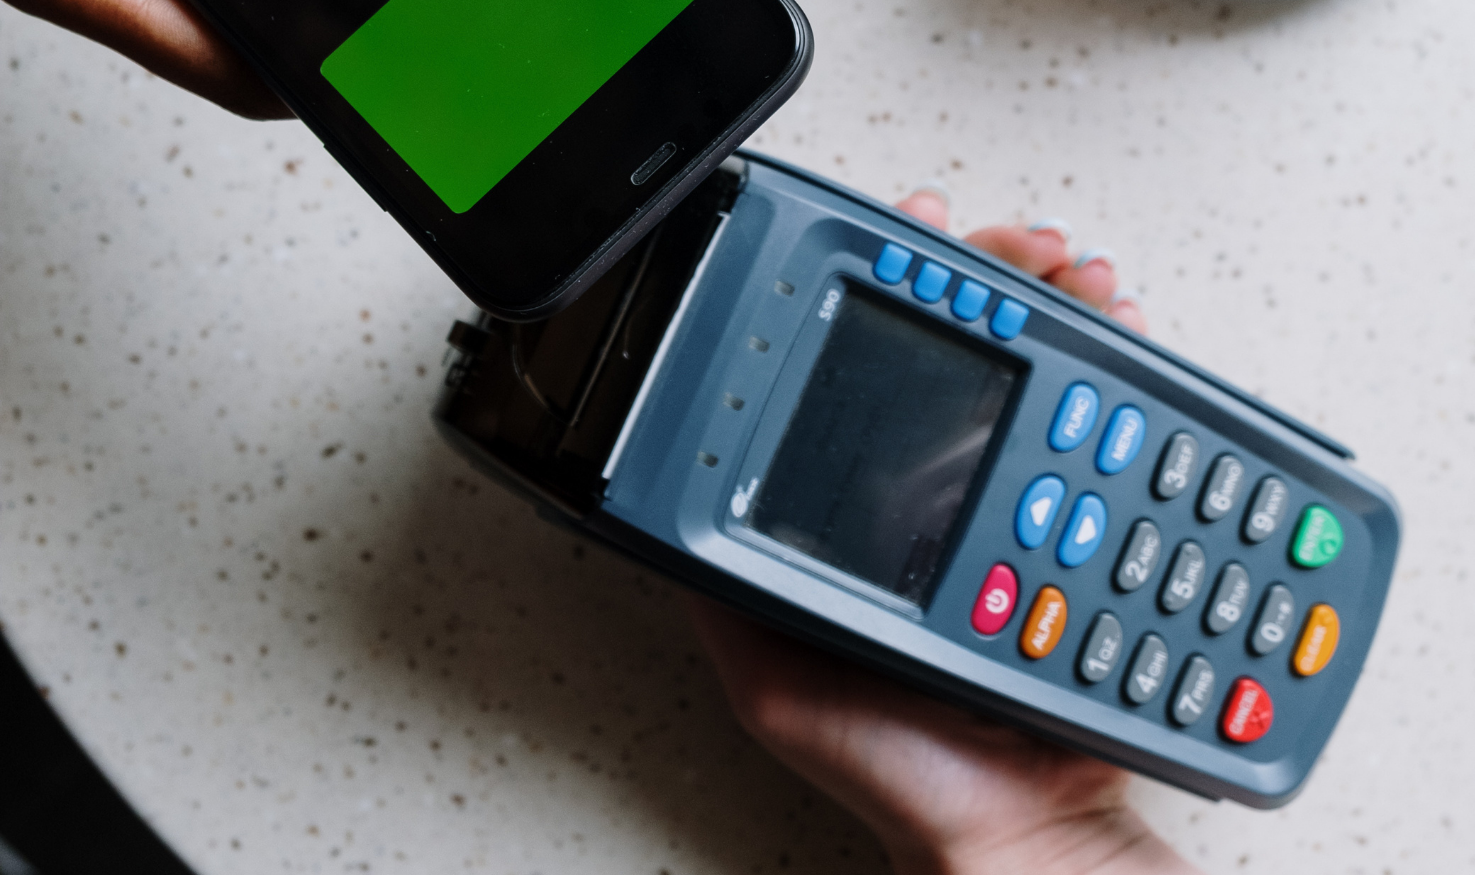 Fraudulent device can compromise your data